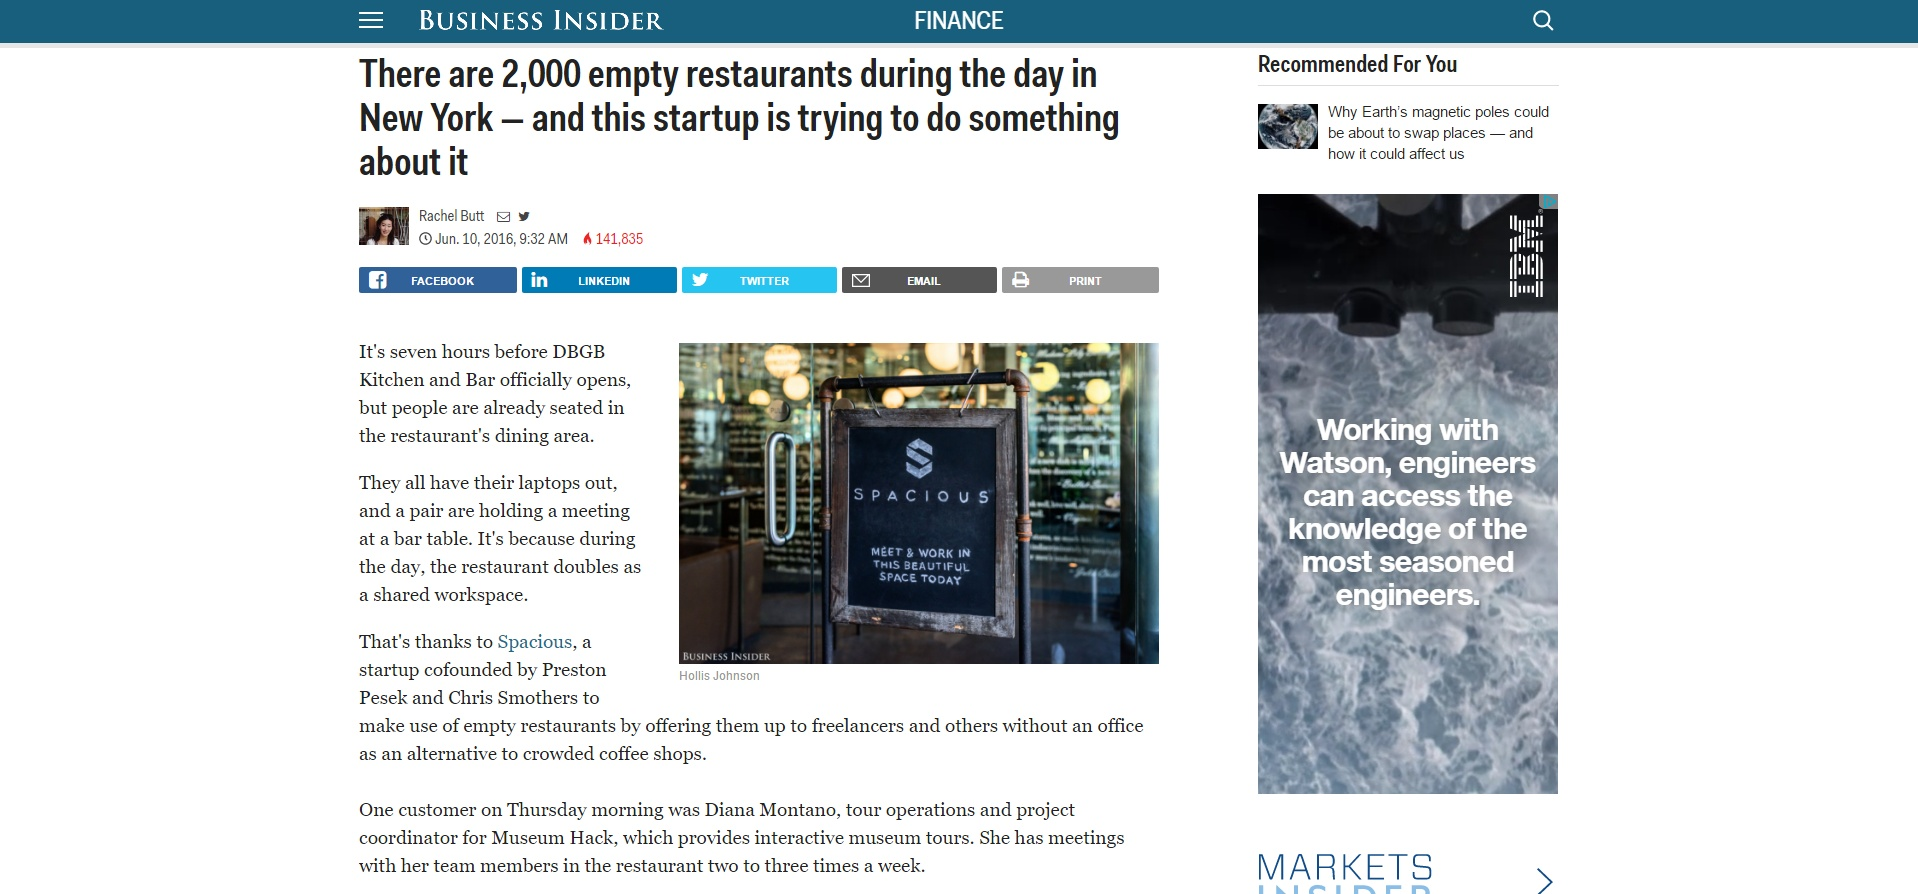 Business Insider Reports on Restaurants Opening Coworking Spaces